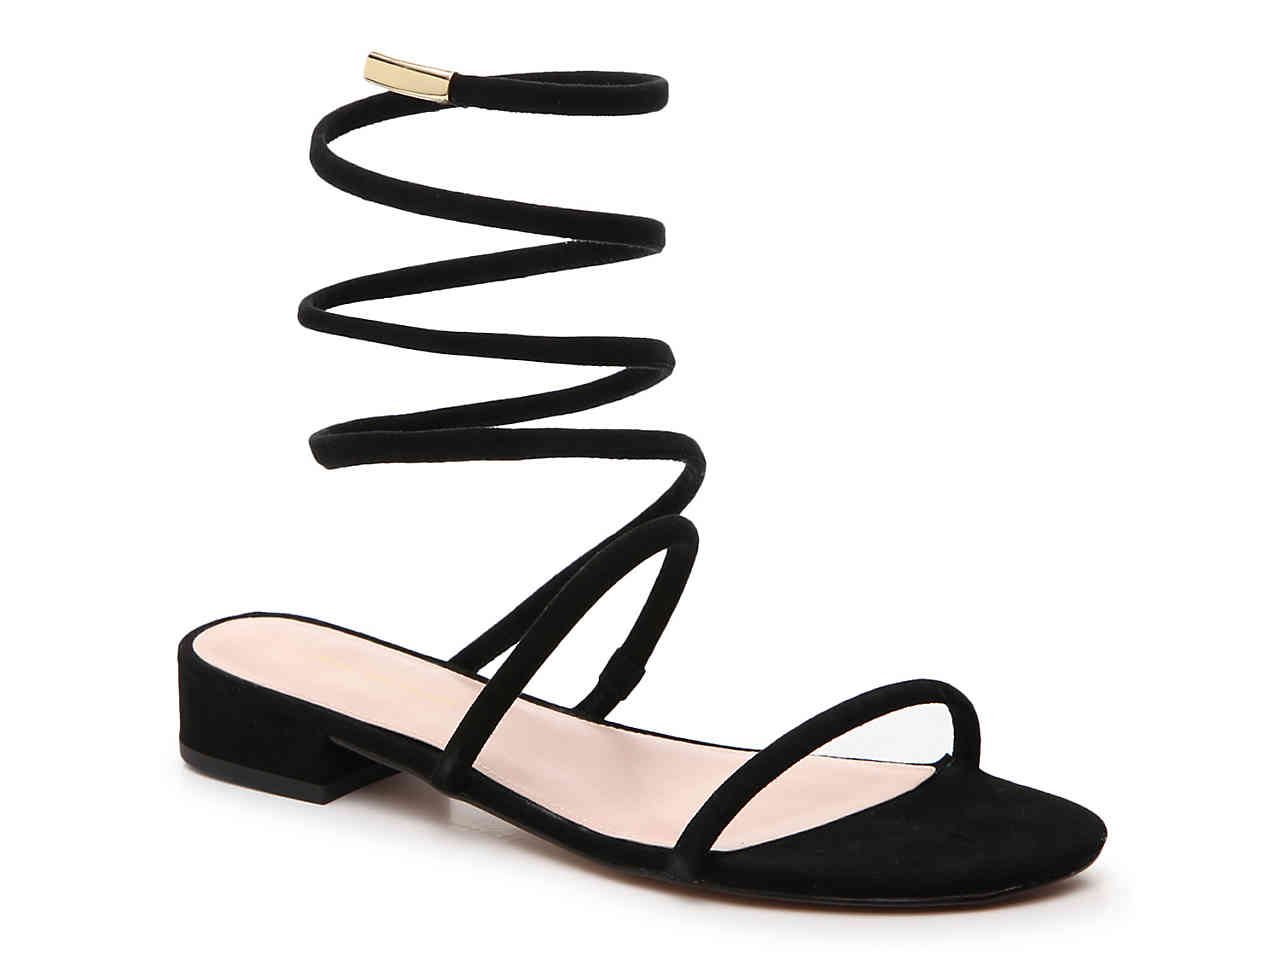 Shop these coil ankle strap sandals by clicking on the image or  HERE .